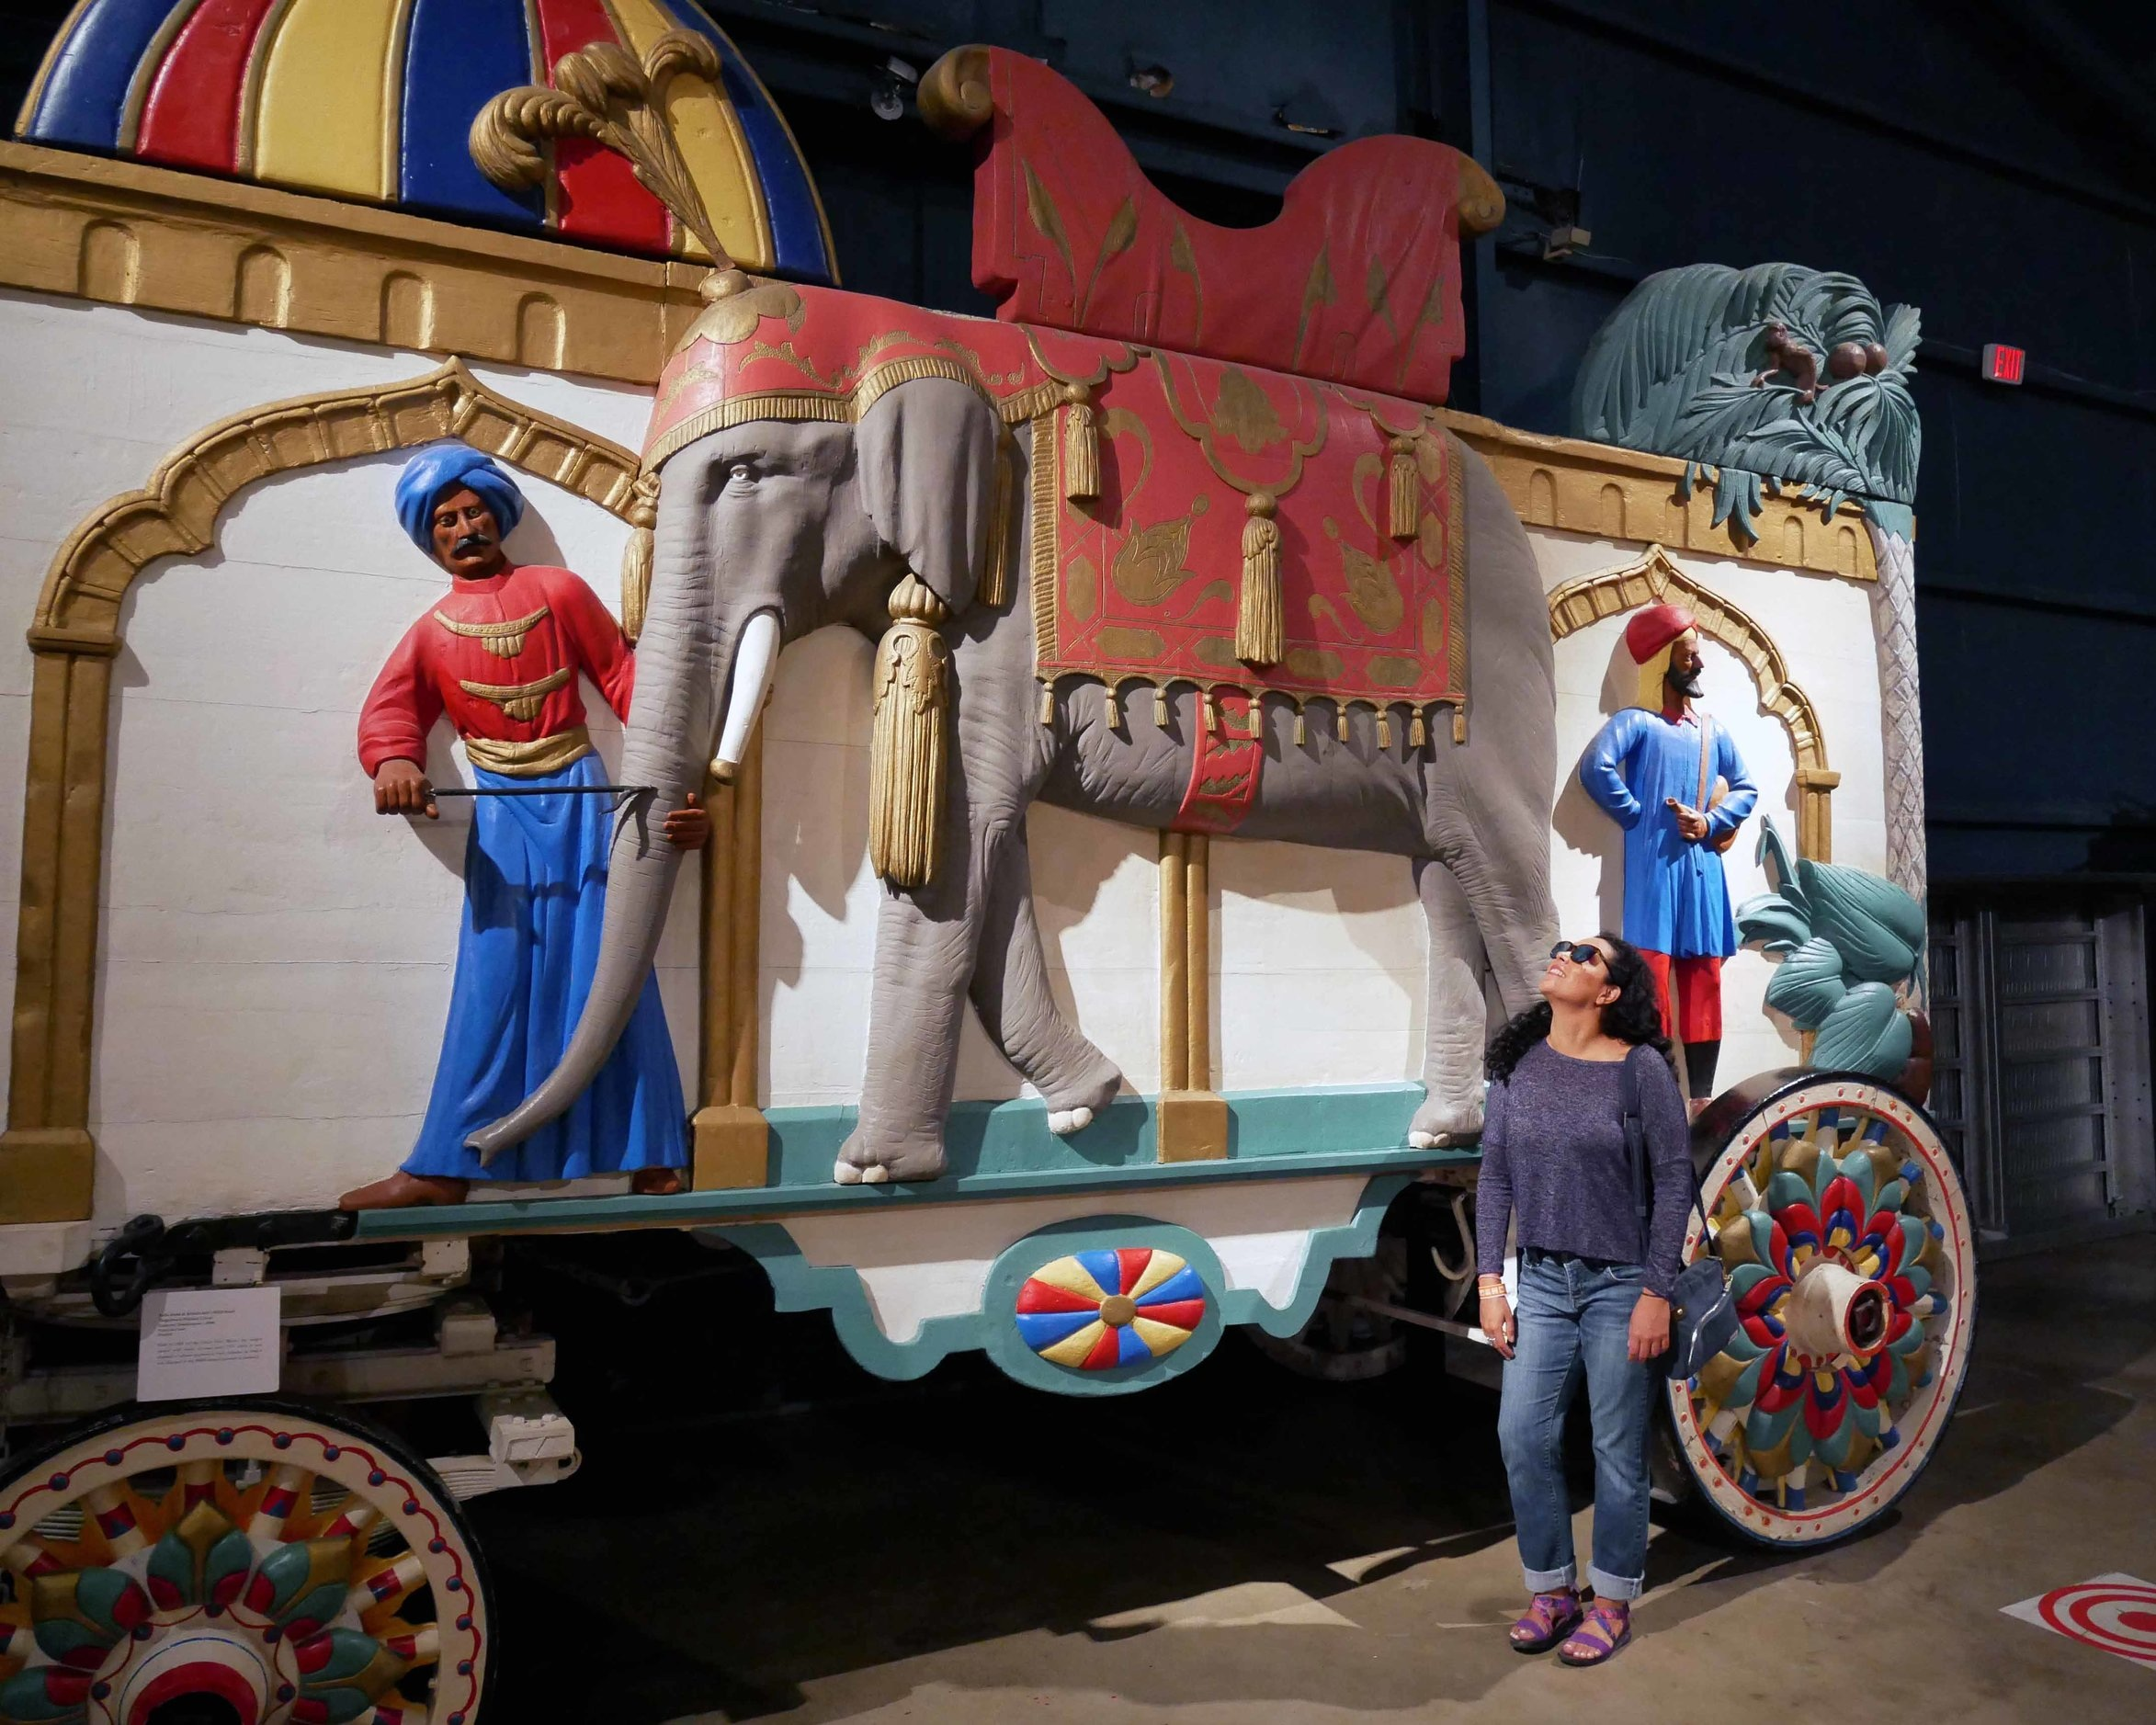 Touring the Circus Museum at Ringling